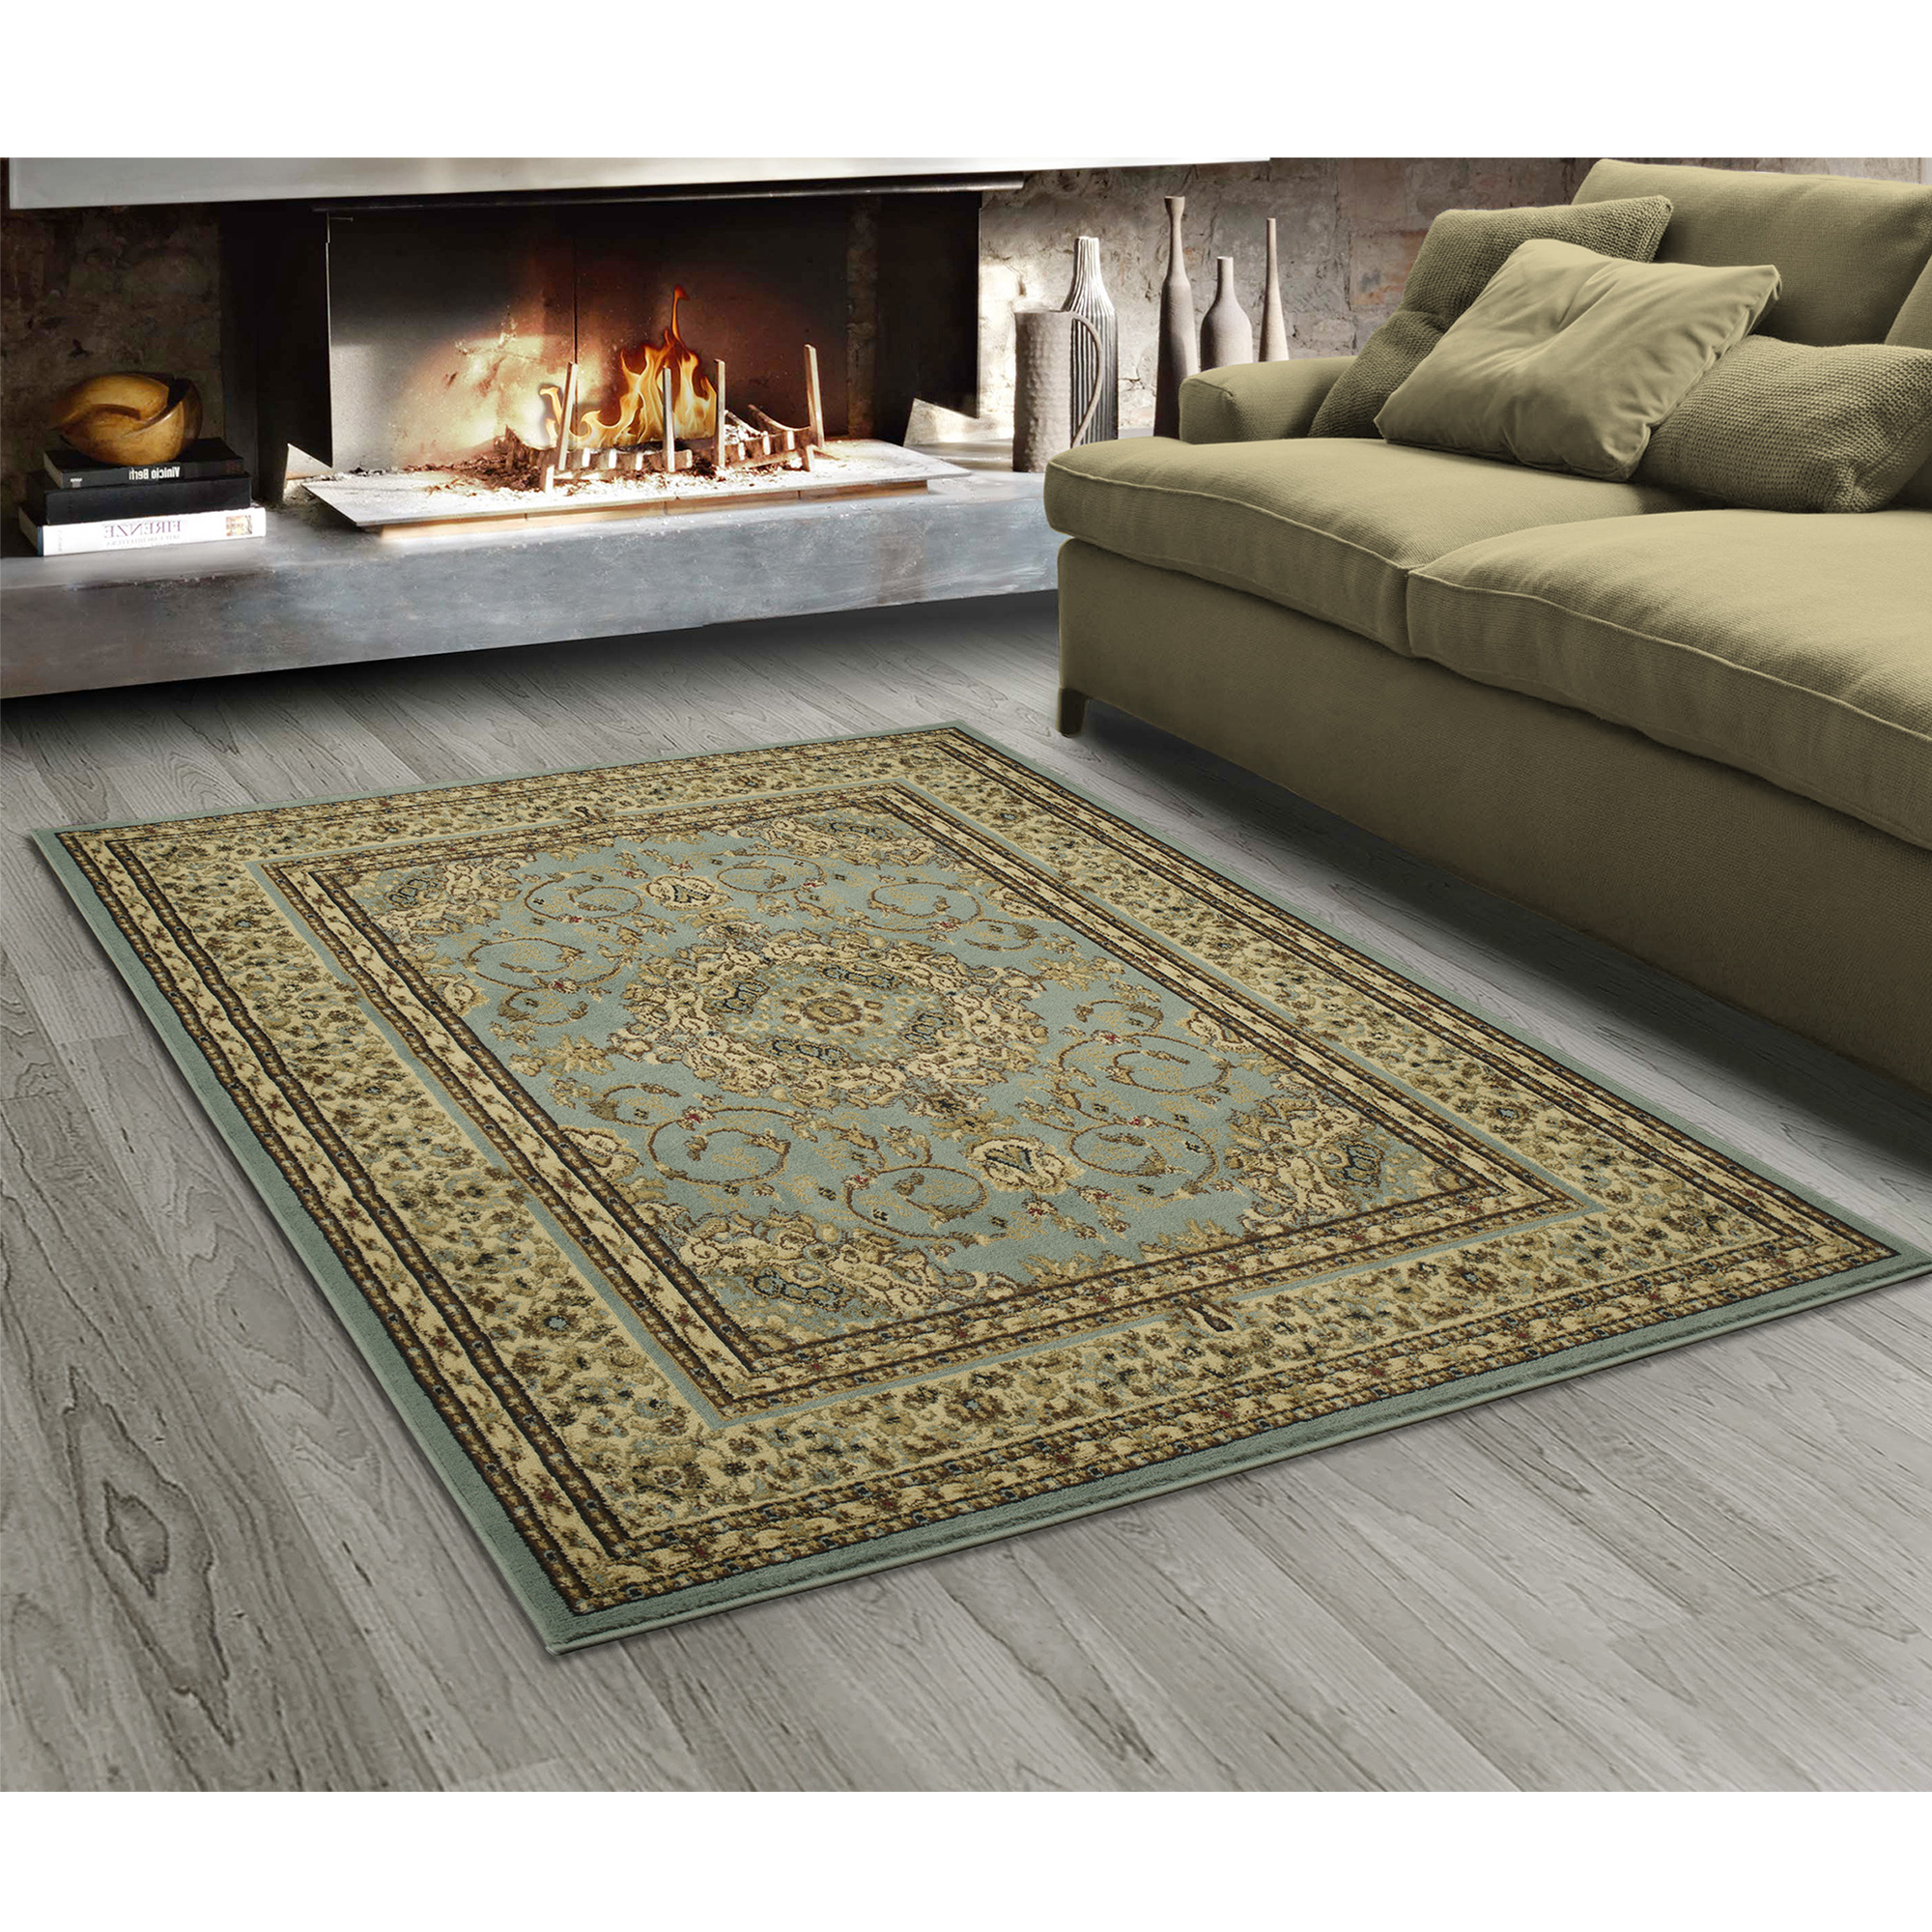 "Sweet Home Stores King Collection Oriental Medallion Design Area Rugs Clearance, 5'3"" X 7'0"", Isfahan Blue Teal"